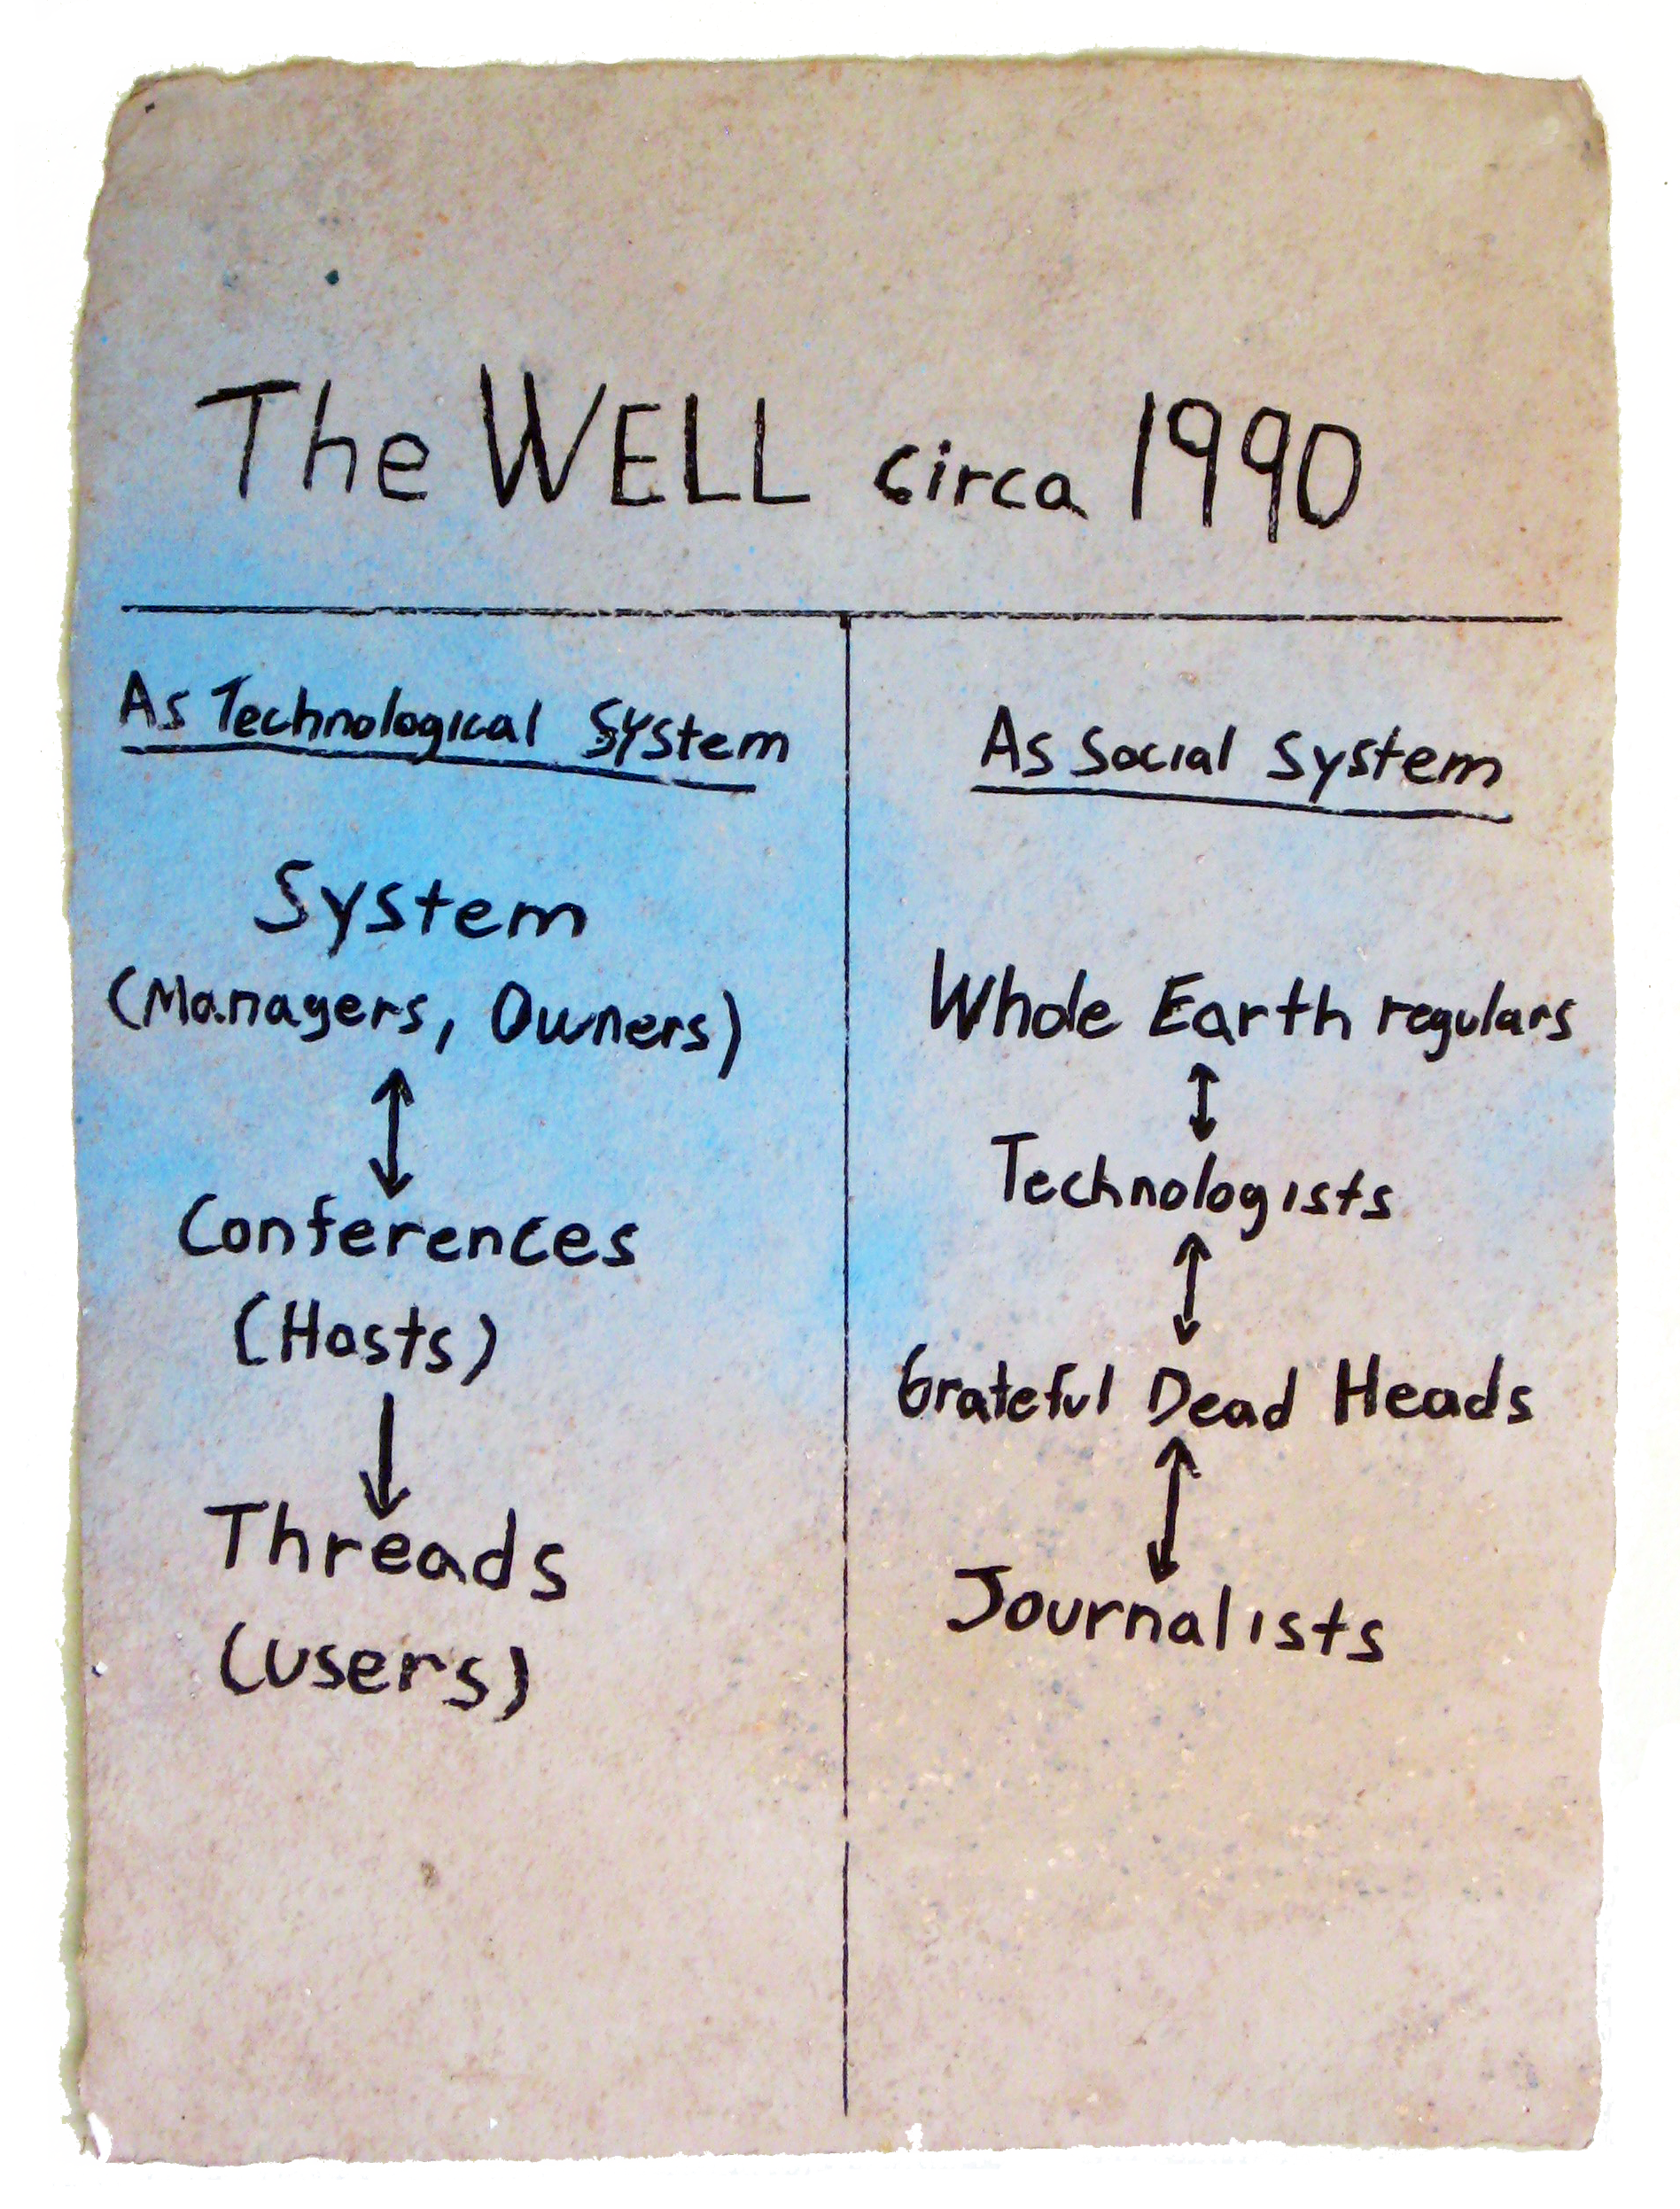 The WELL circa 1990